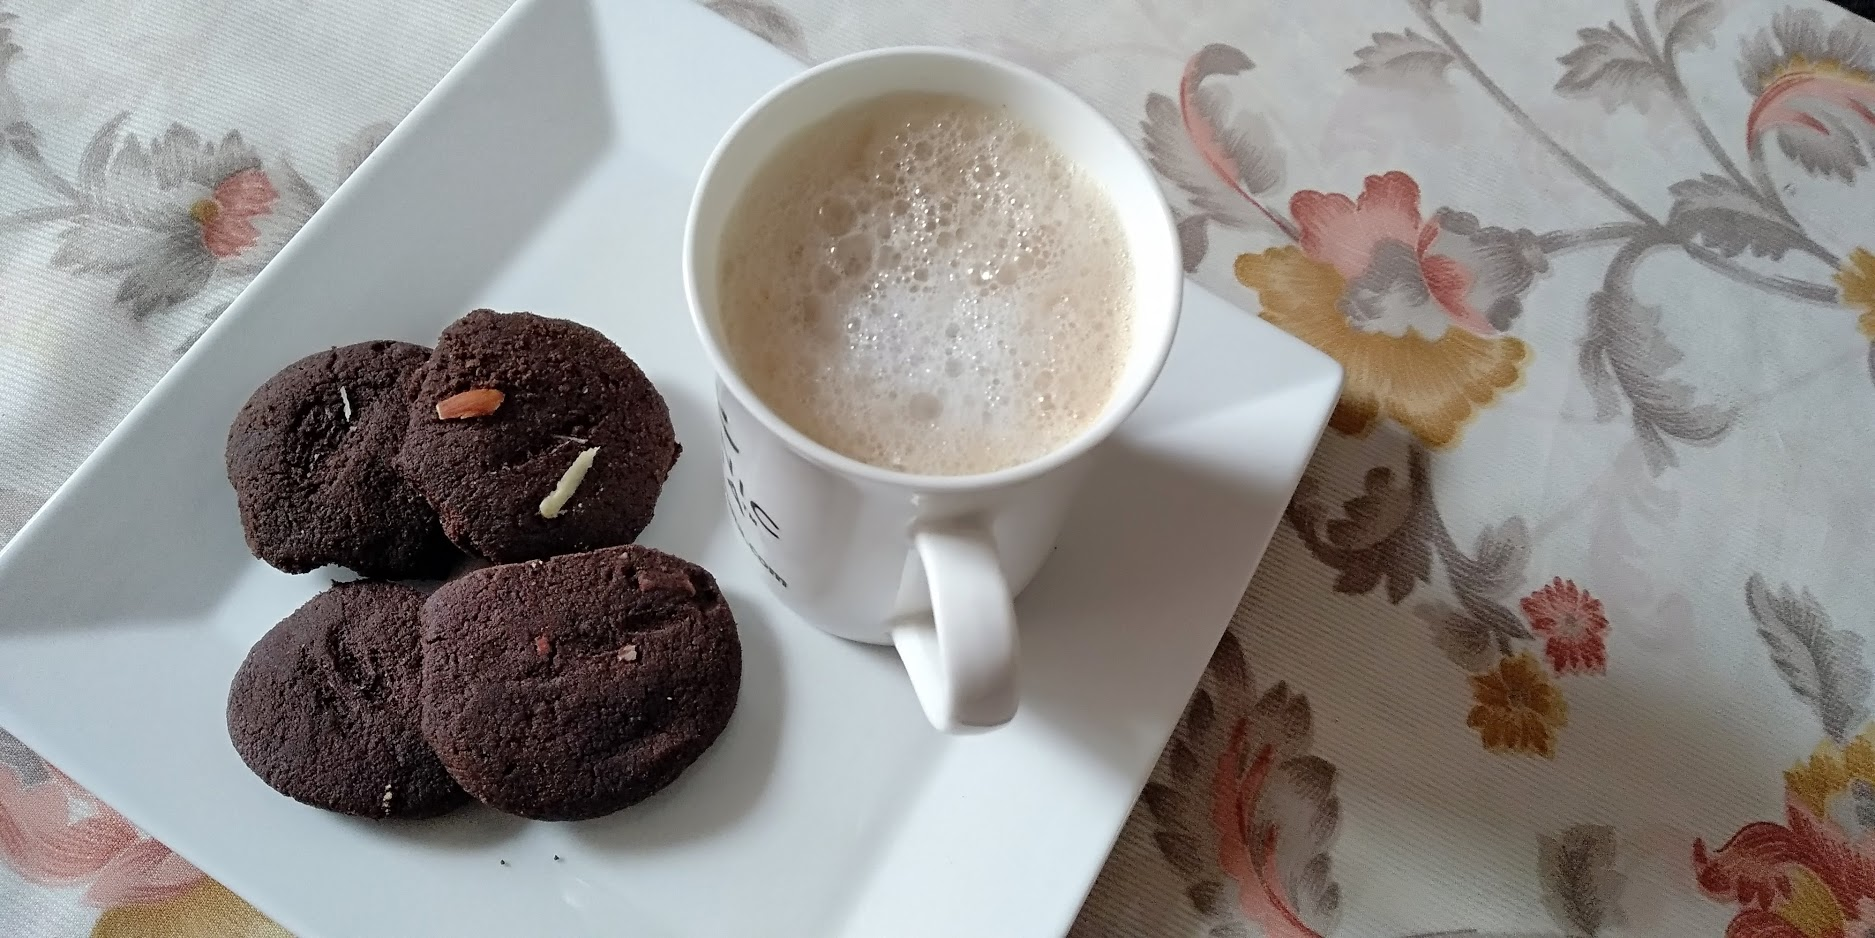 Ginger Basil Coffee with Cookies